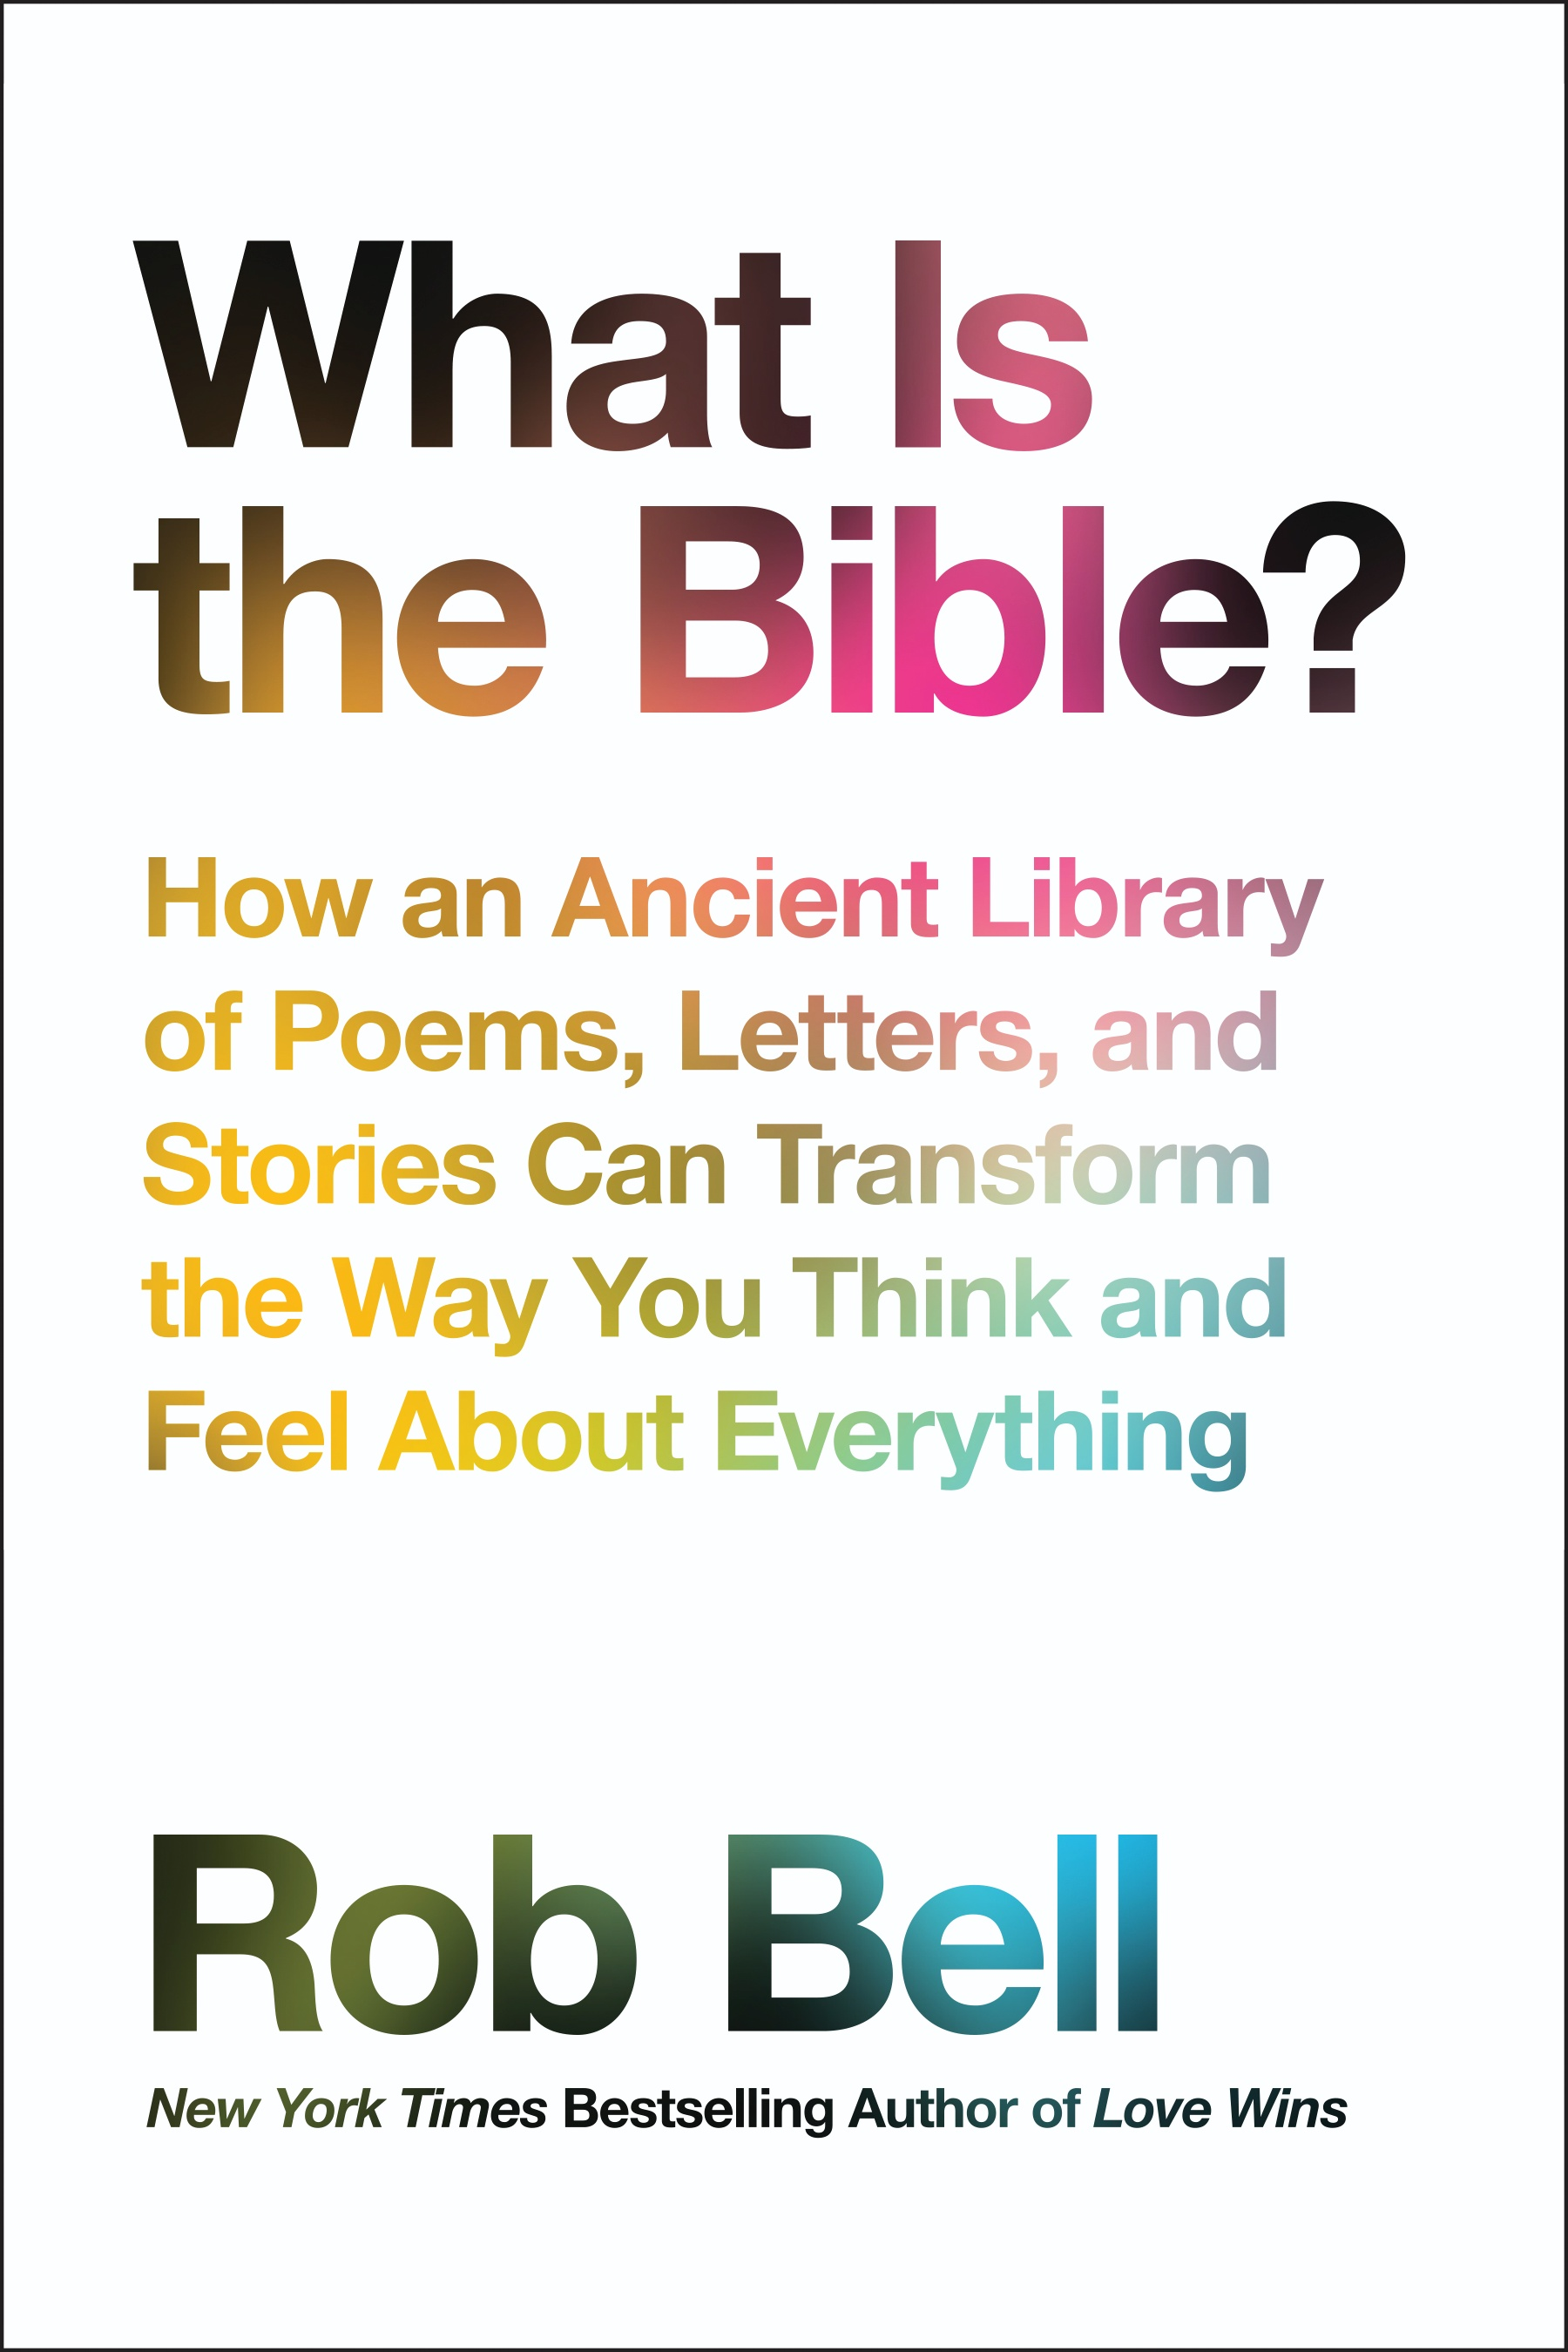 NYC Book Launch: What is the Bible?: How an Ancient Library of Poems, Letters, and Stories Can Transform the Way You Think and Feel About Everything by Rob Bell